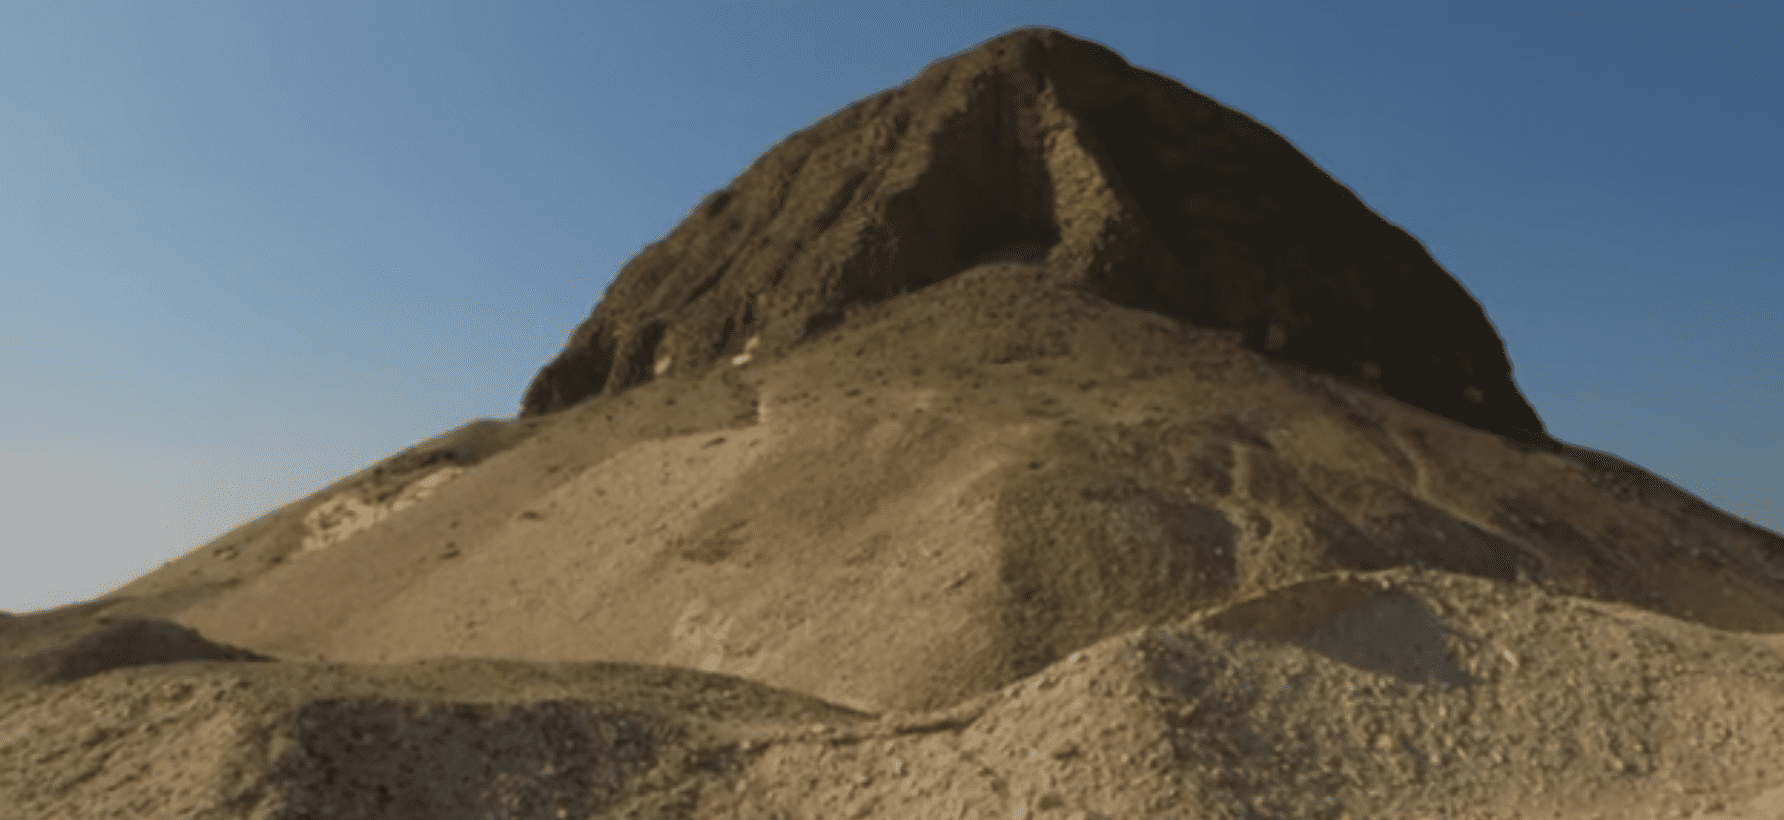 The Pyramid of Senusret II at Lahun in Egypt